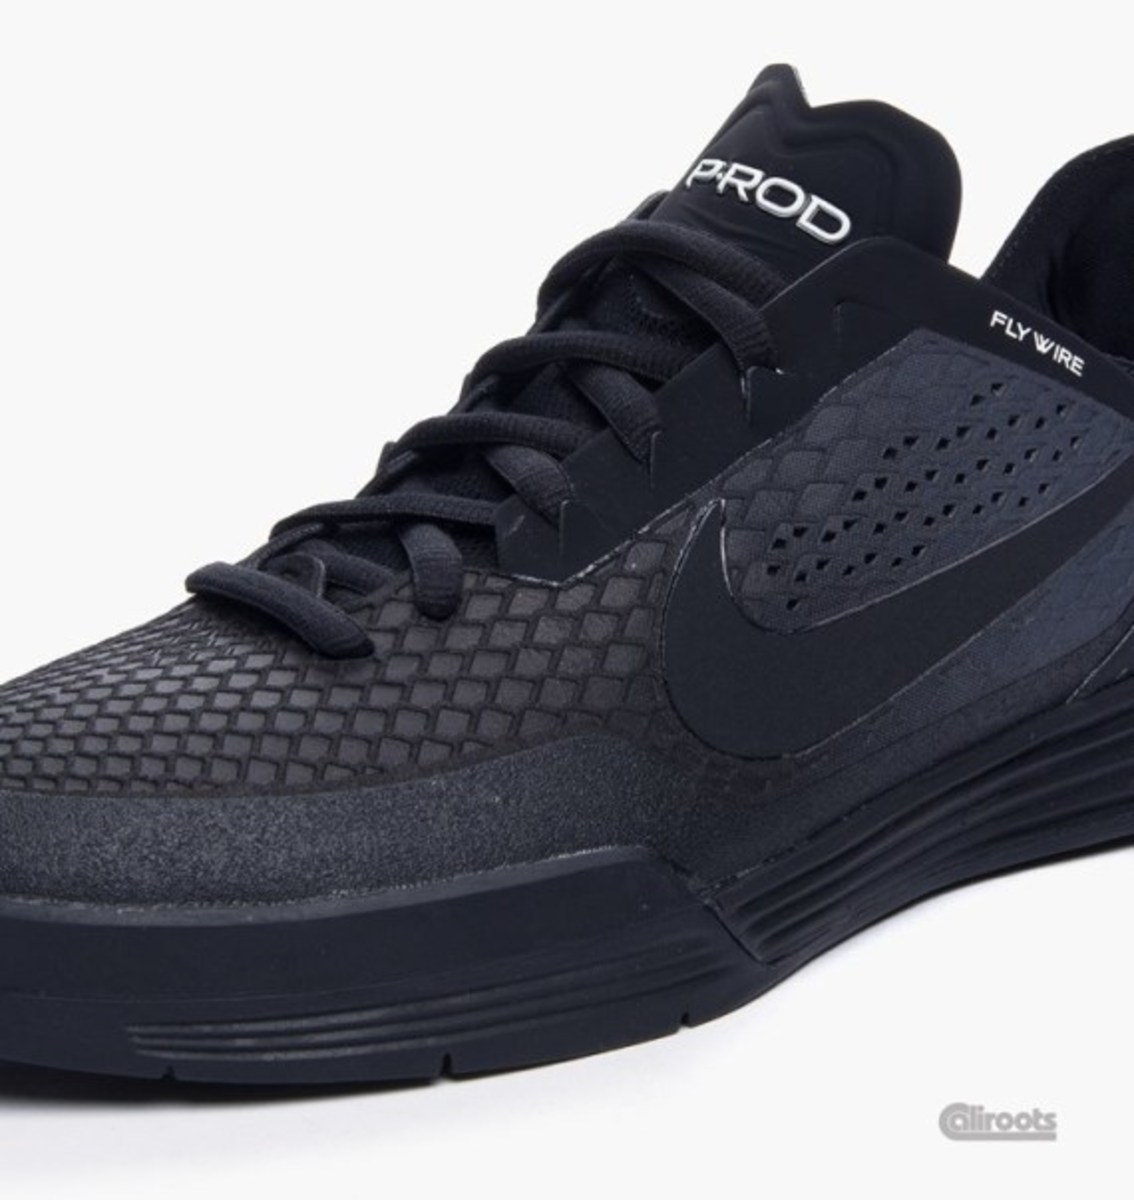 nike-sb-paul-rodriguez-8-triple-black-02